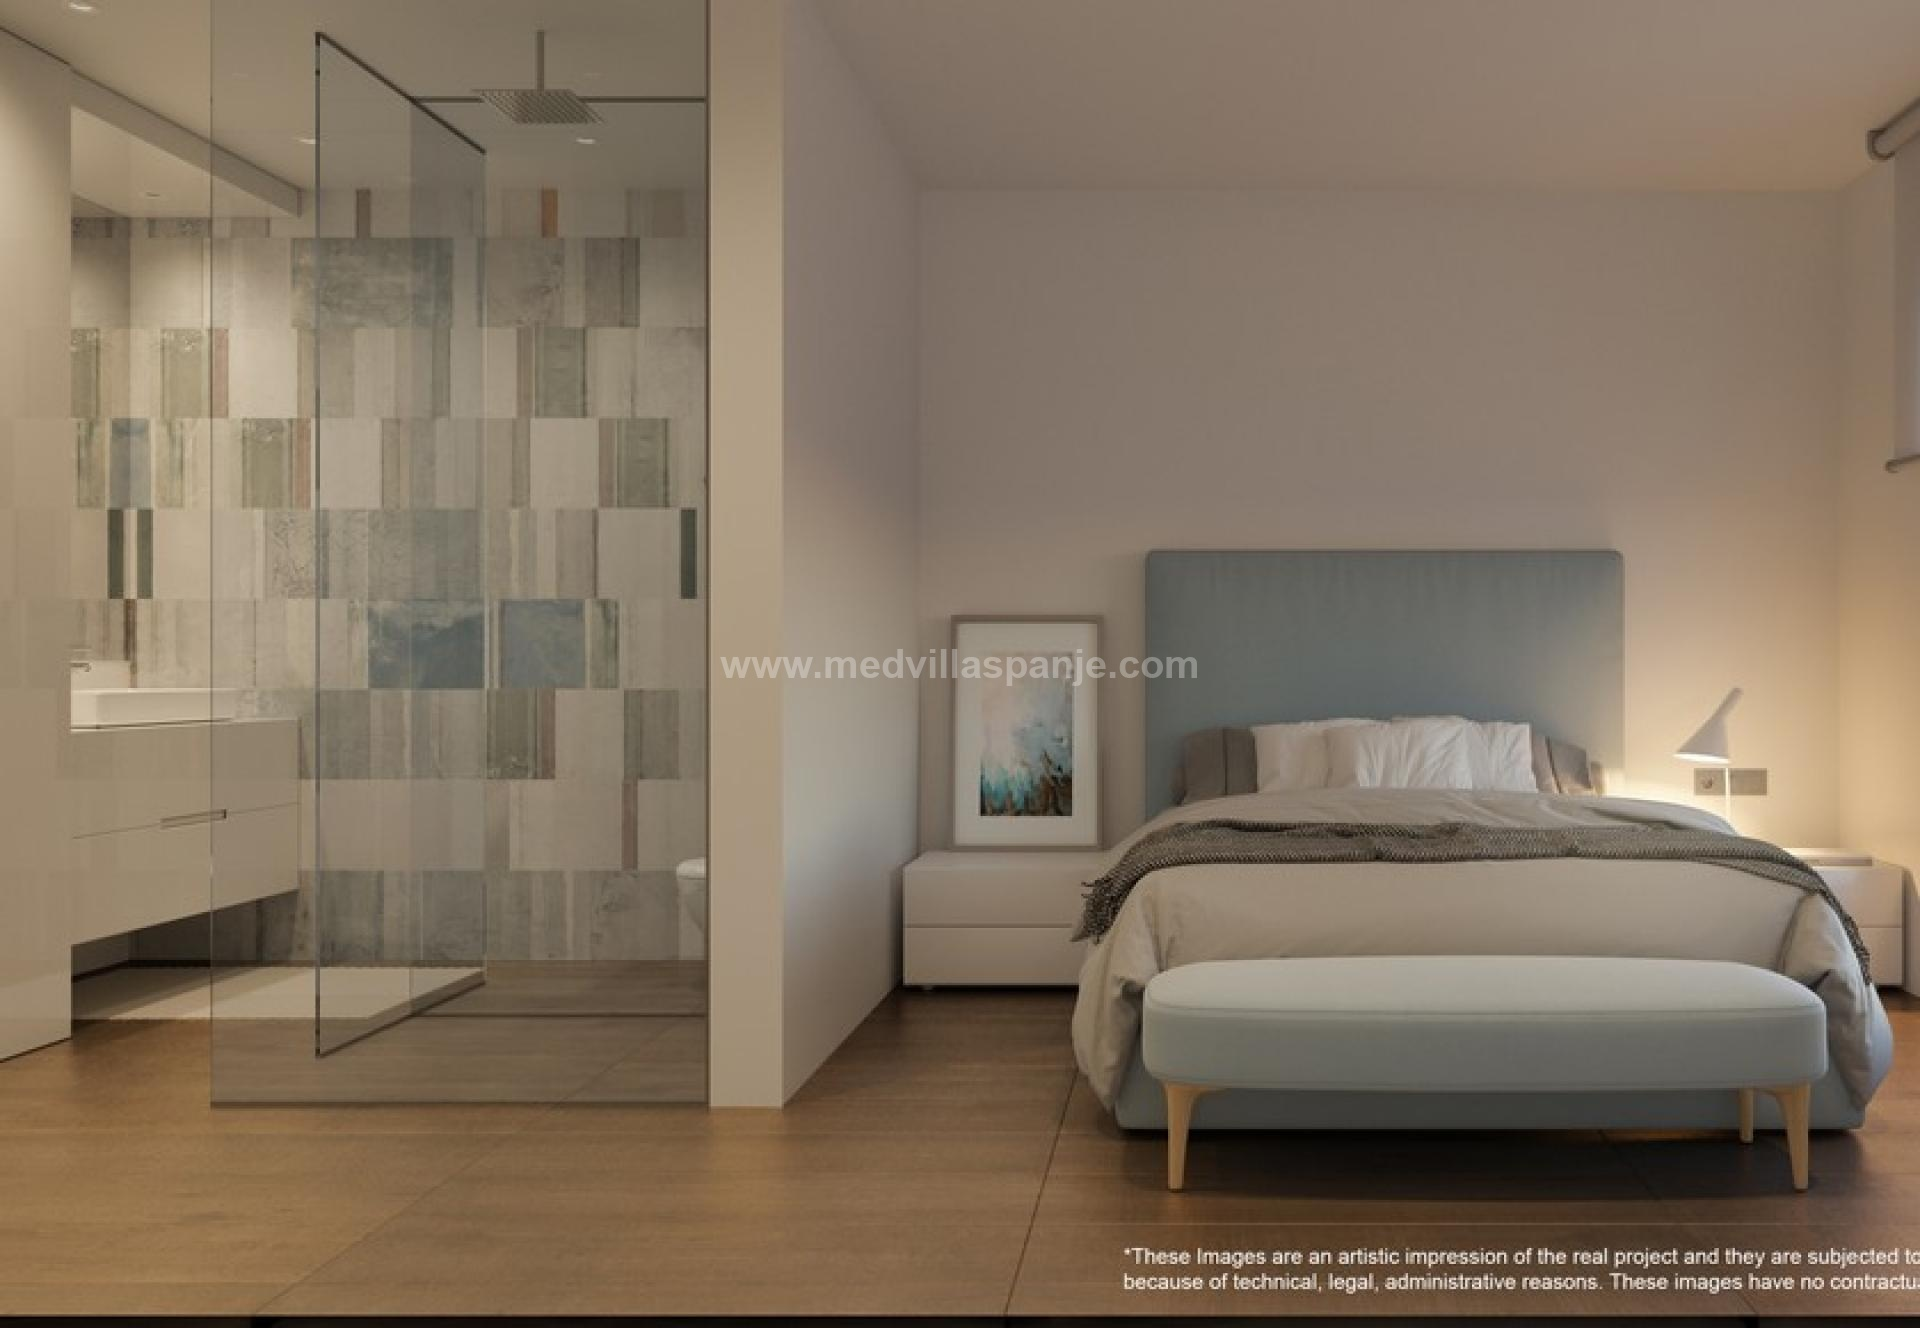 Exclusive new build apartments with terrace Orihuela Costa in Medvilla Spanje